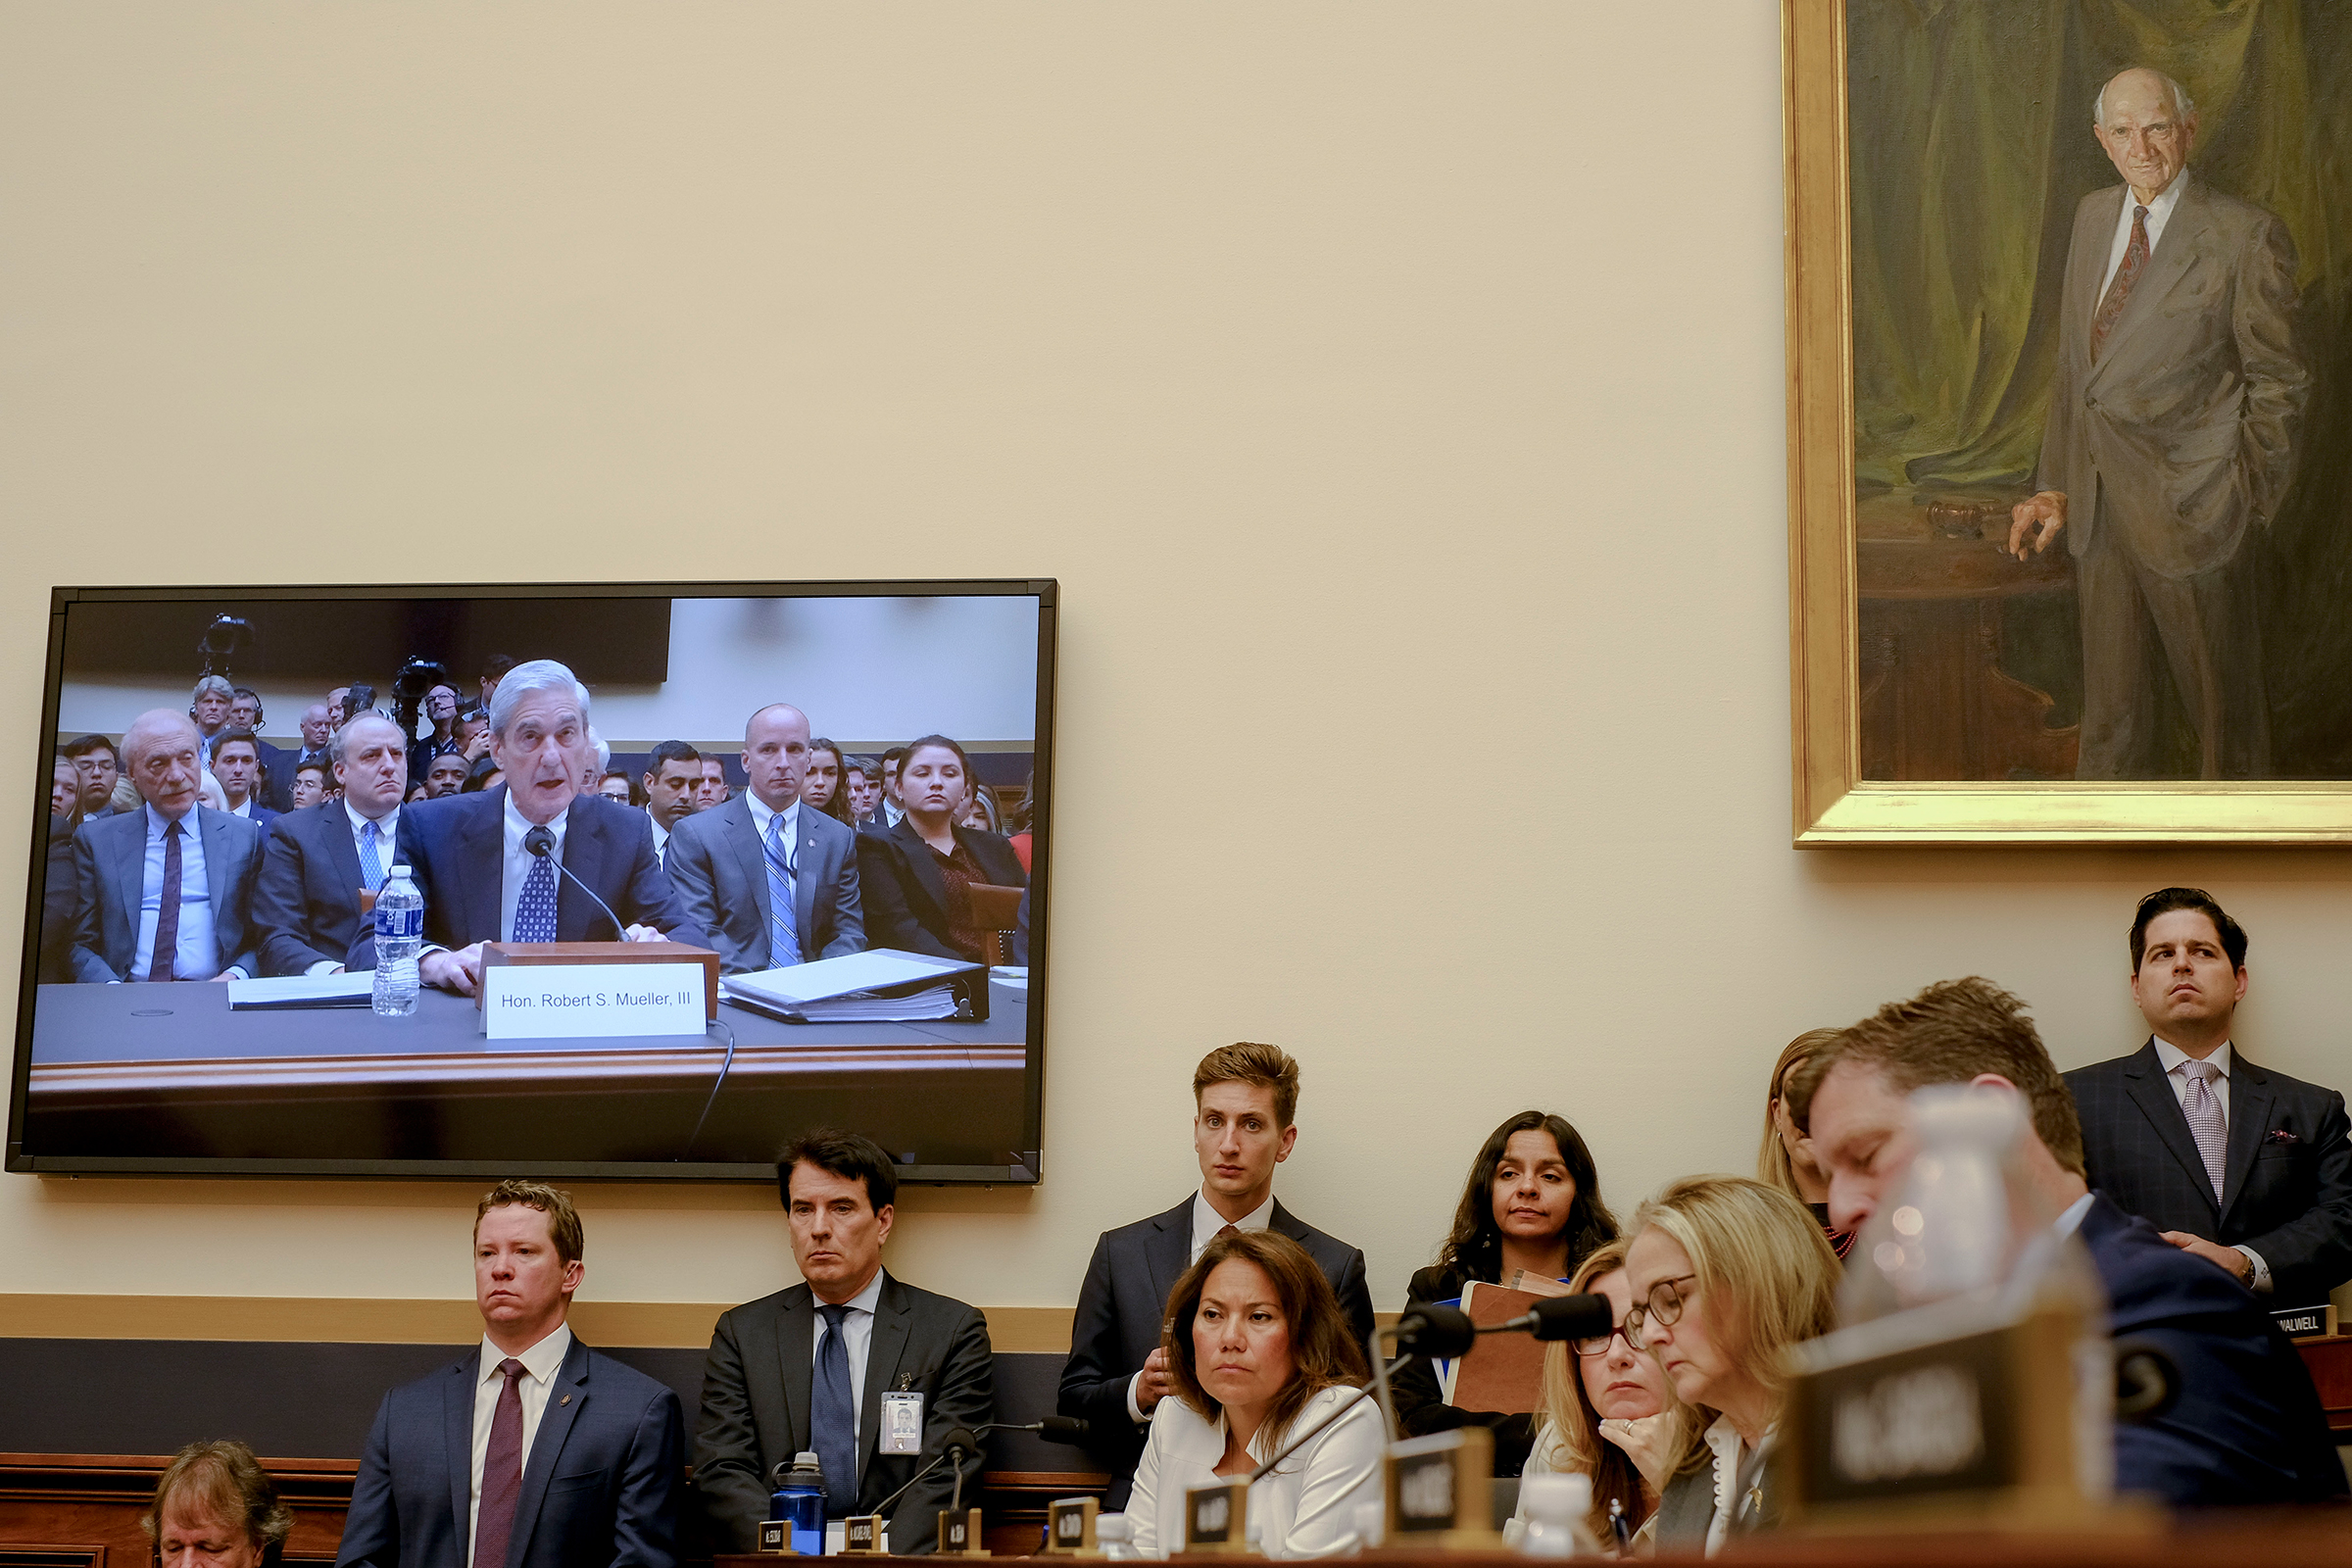 A television in the room broadcasts Mueller's testimony before the House Judiciary Committee.